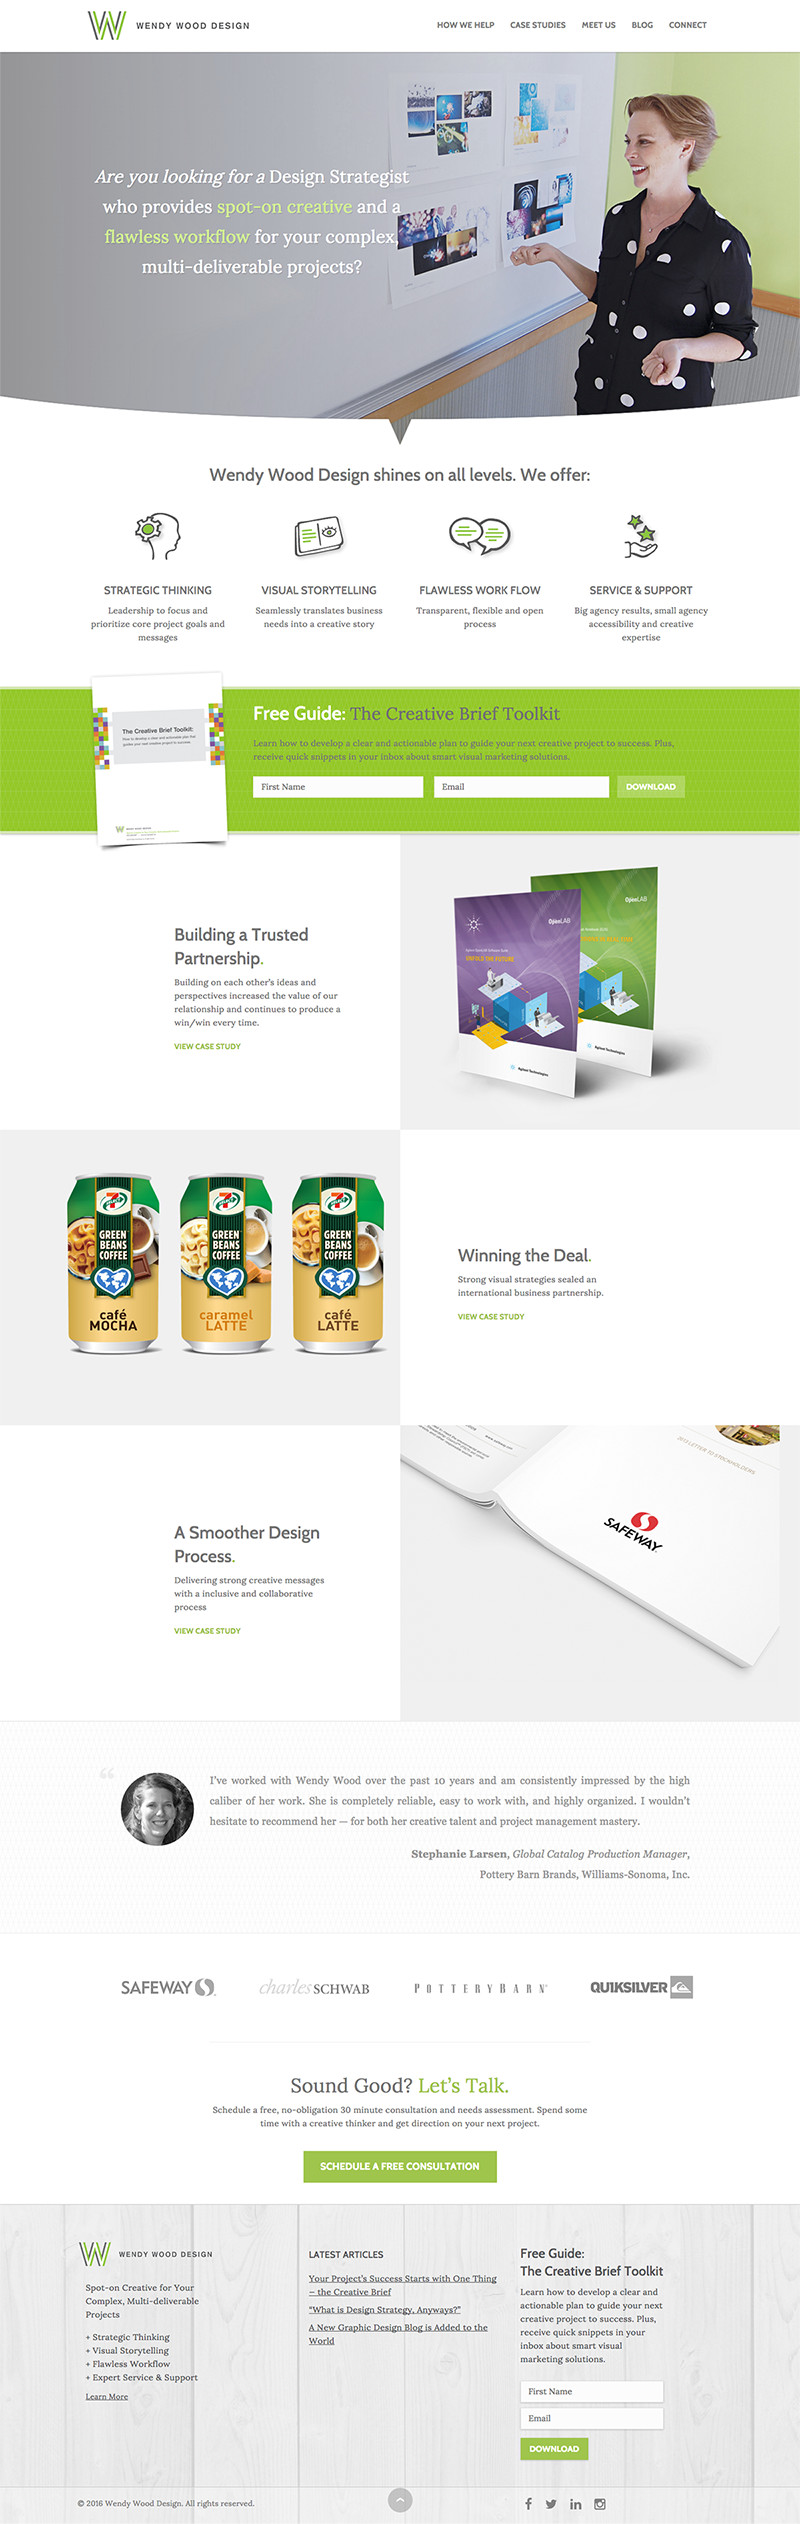 designer-portfolio-website-design4